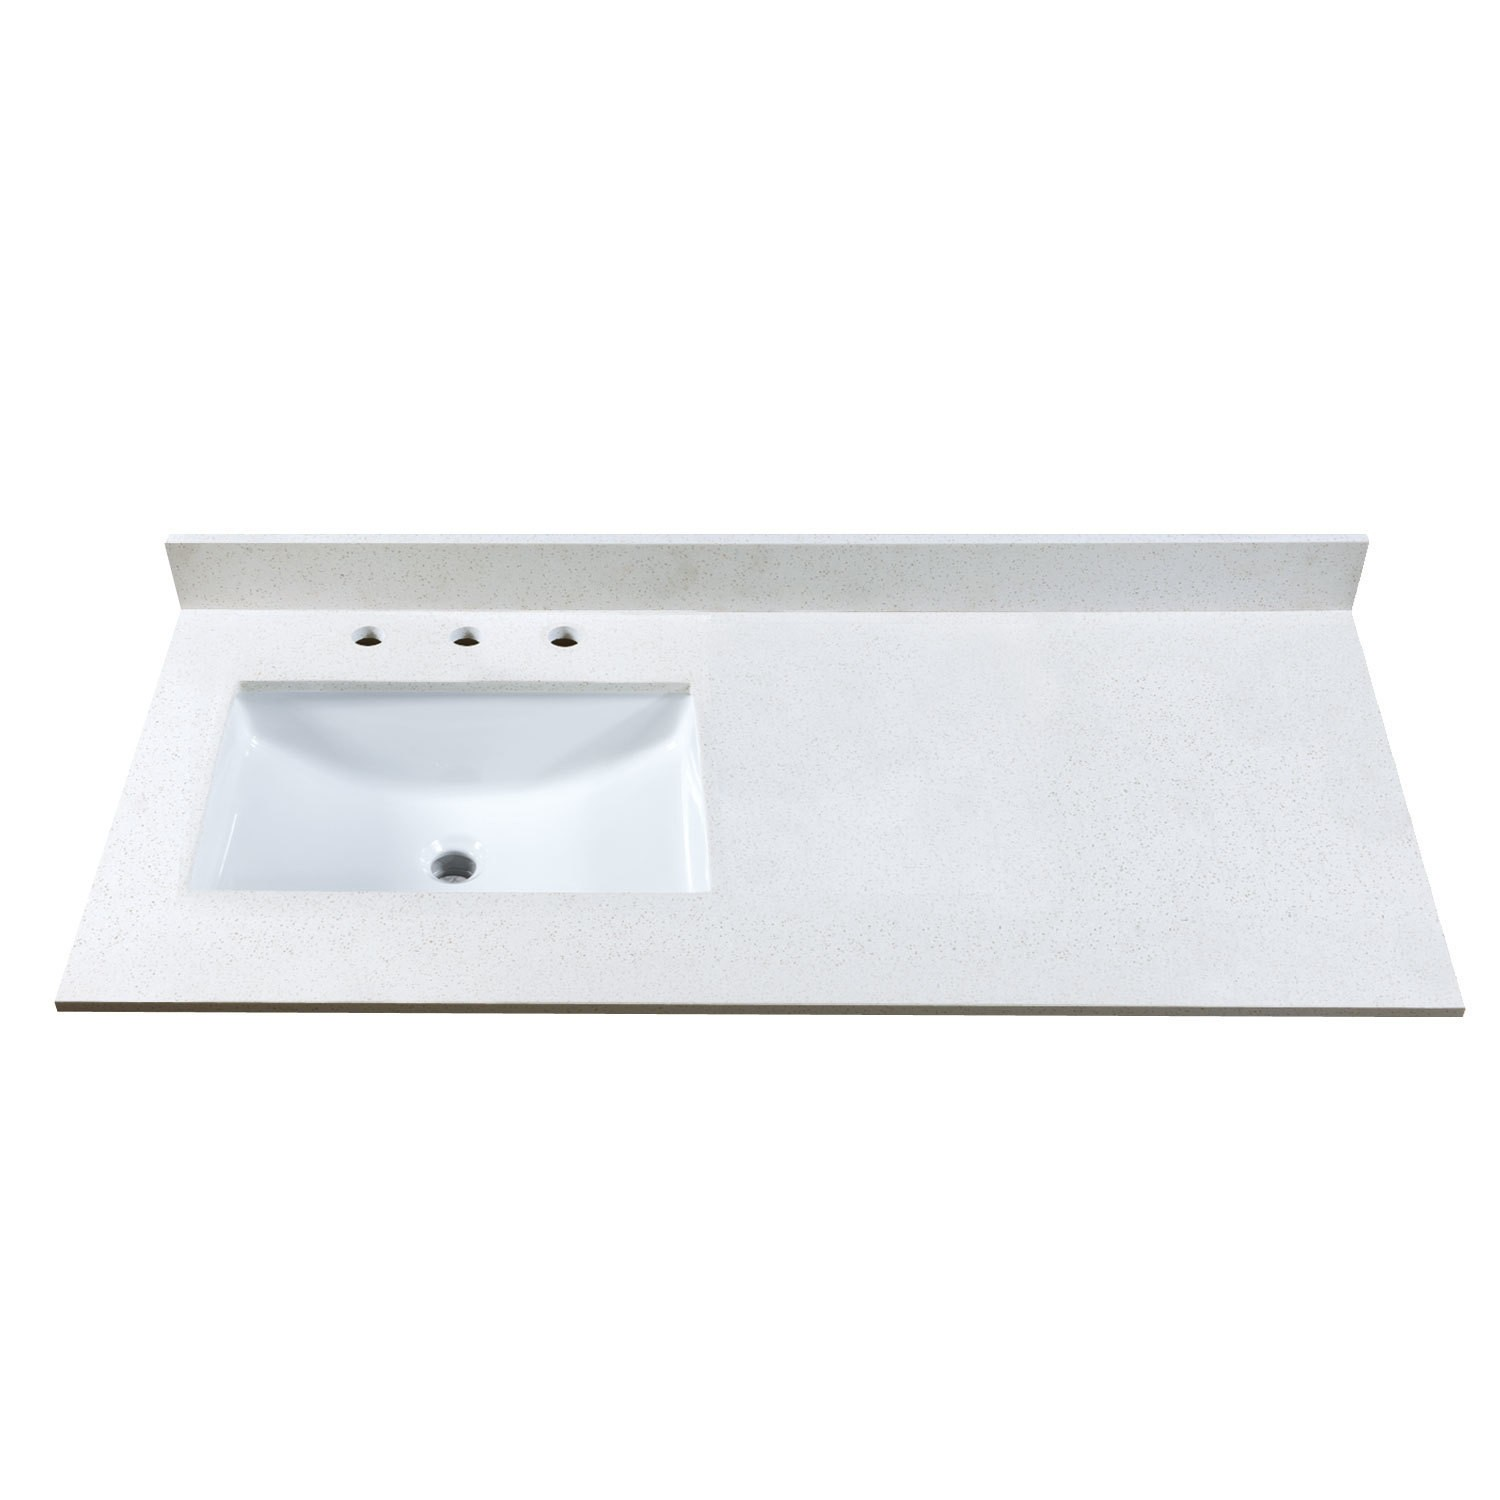 49 Inch Stone Vanity Top W Side Or Center Sink Cutout And 8 Inch Widespread Faucet Holes